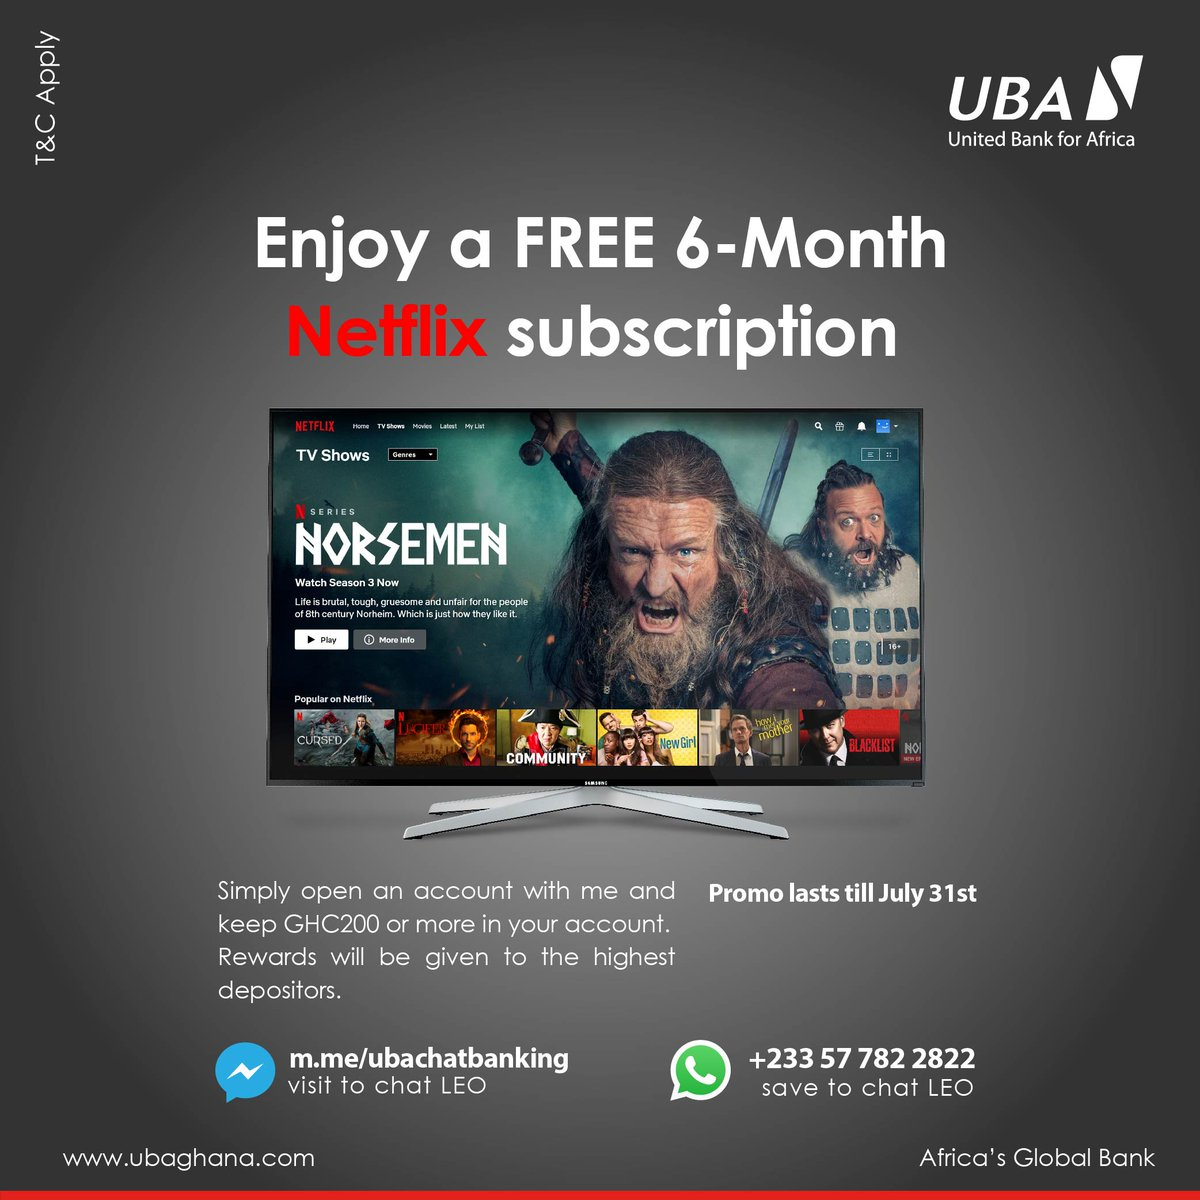 Enjoy free @Netflix for 6 months by simply opening an account with Leo and keeping GHC200 or more.  Click here to get started: https://t.co/WQRsdRdgXJ #StaySafe #LeoMagic #AfricasGlobalBank https://t.co/RYyBIHd5MW